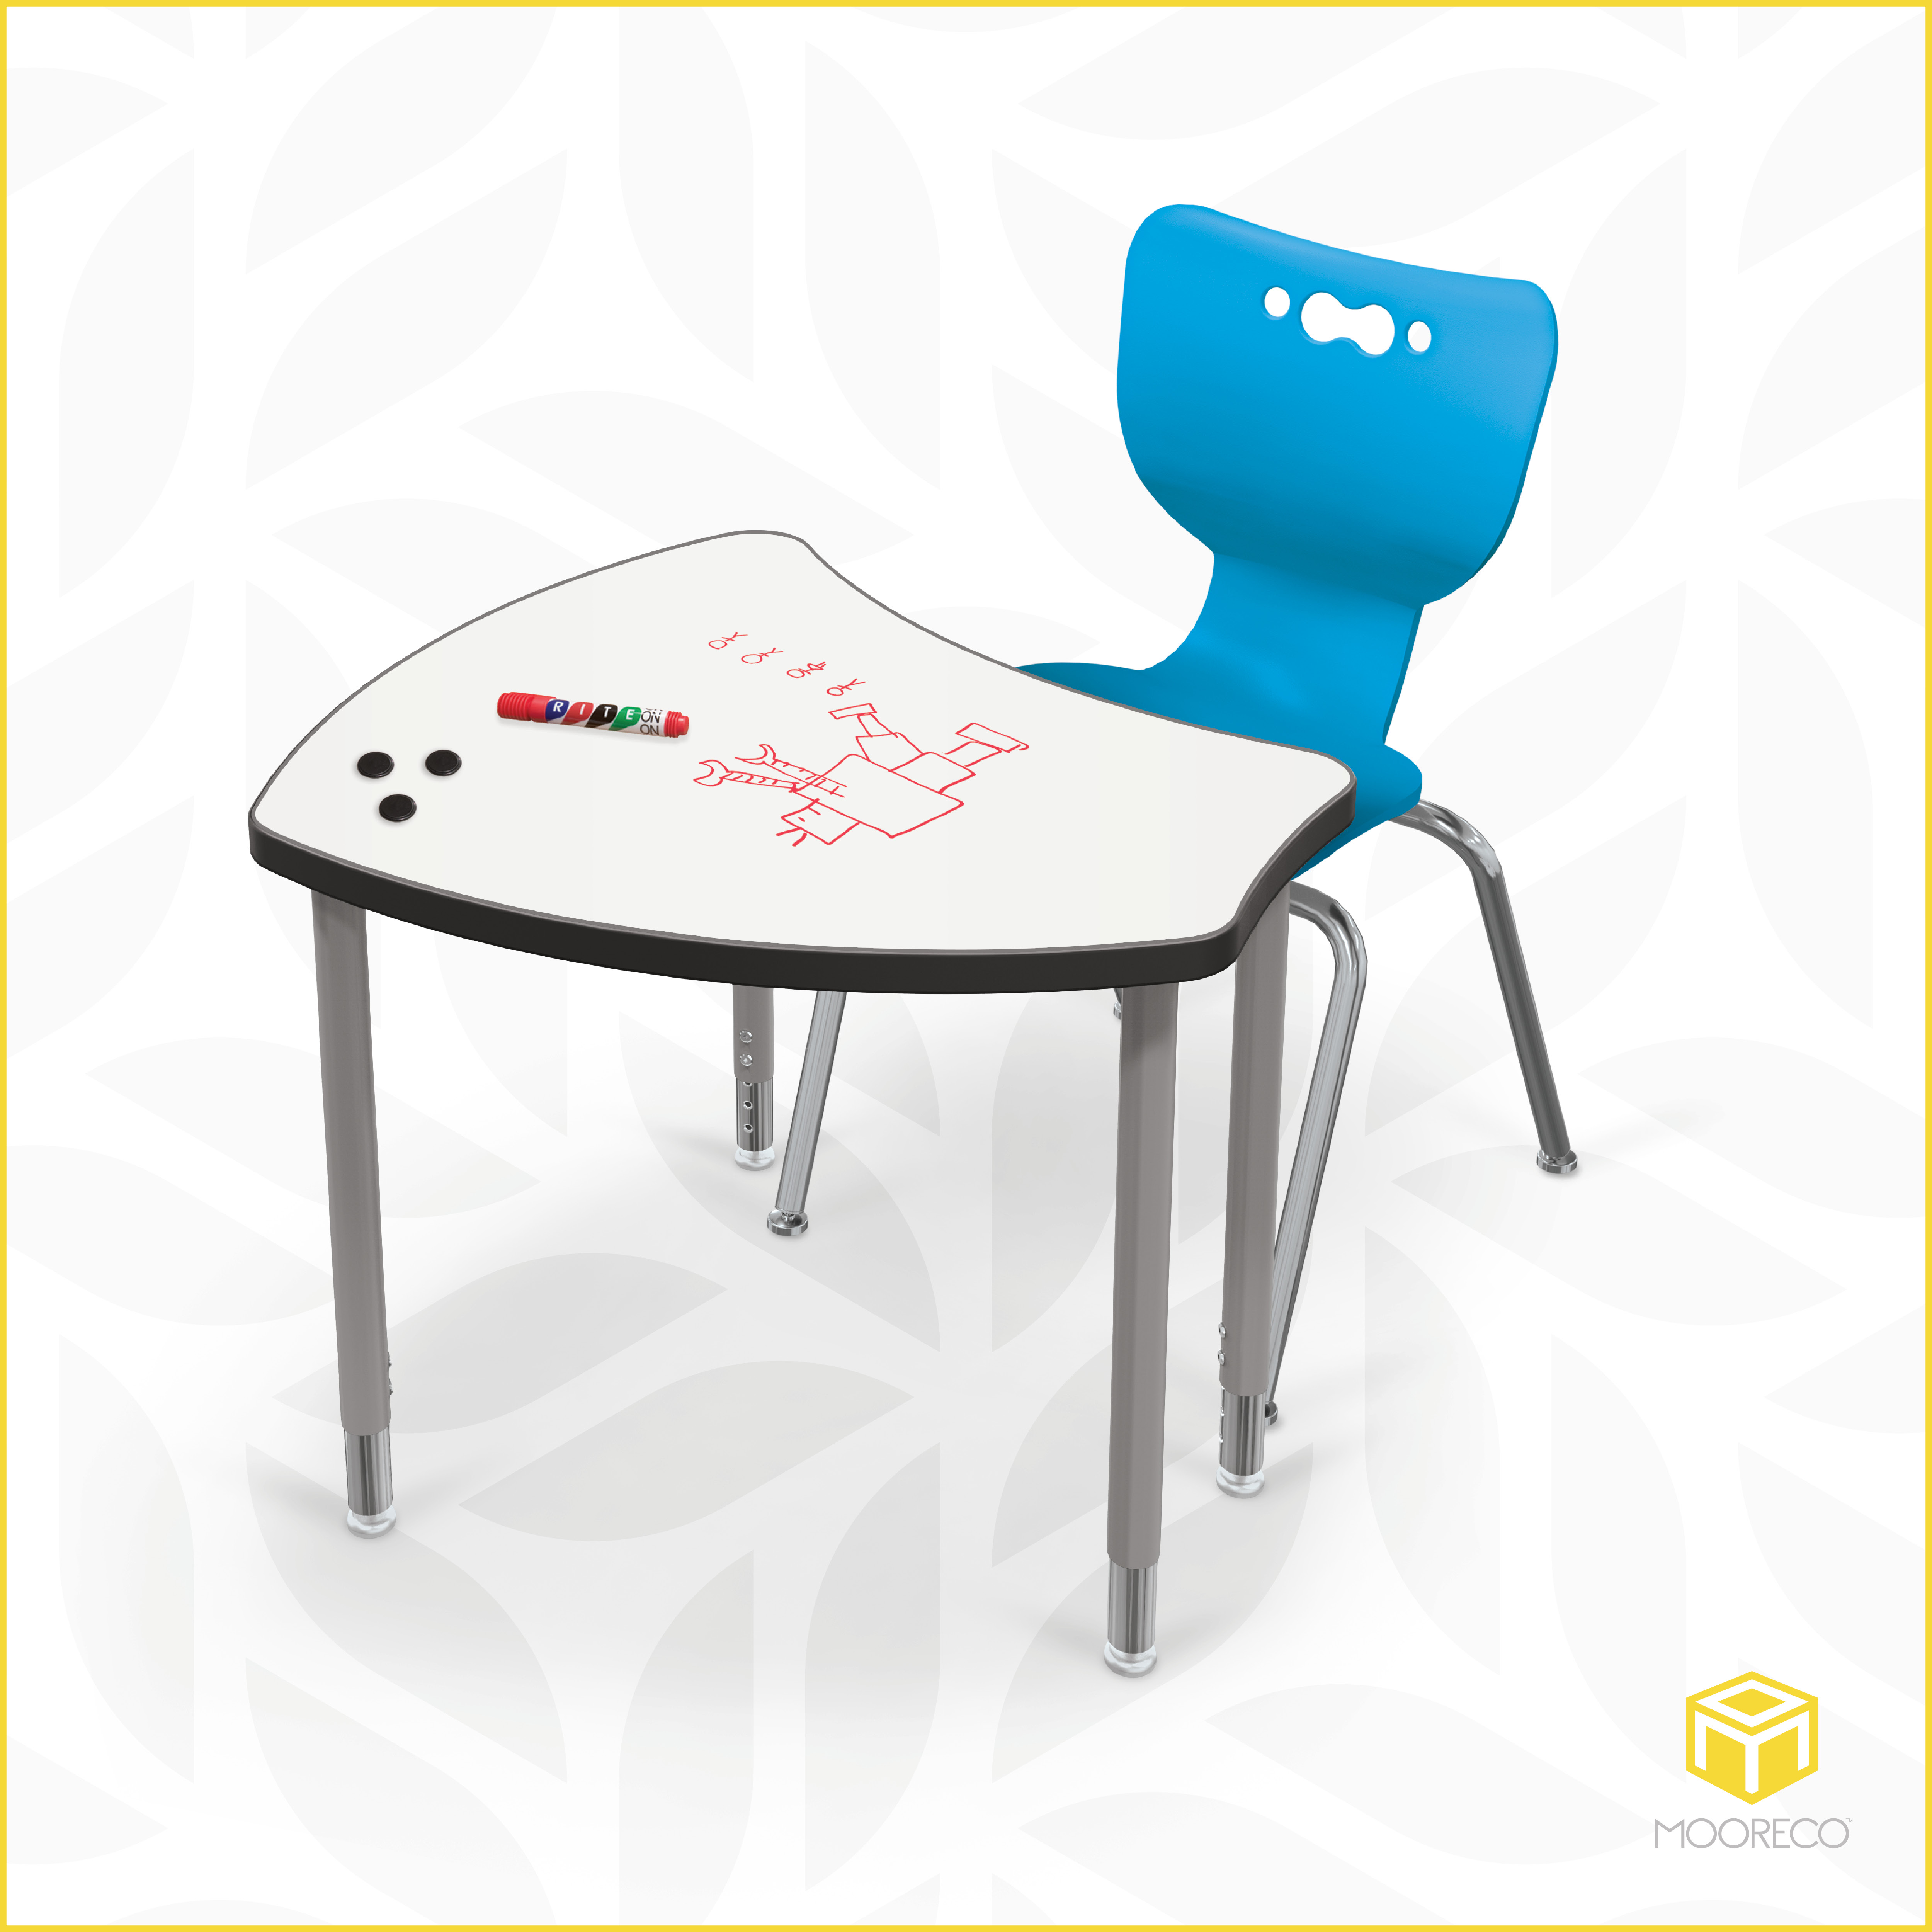 2020-10 Hierarchy Shapes Desk with Porcelain Steel Top-ad product (chair) facebook and instagram_v1-hi